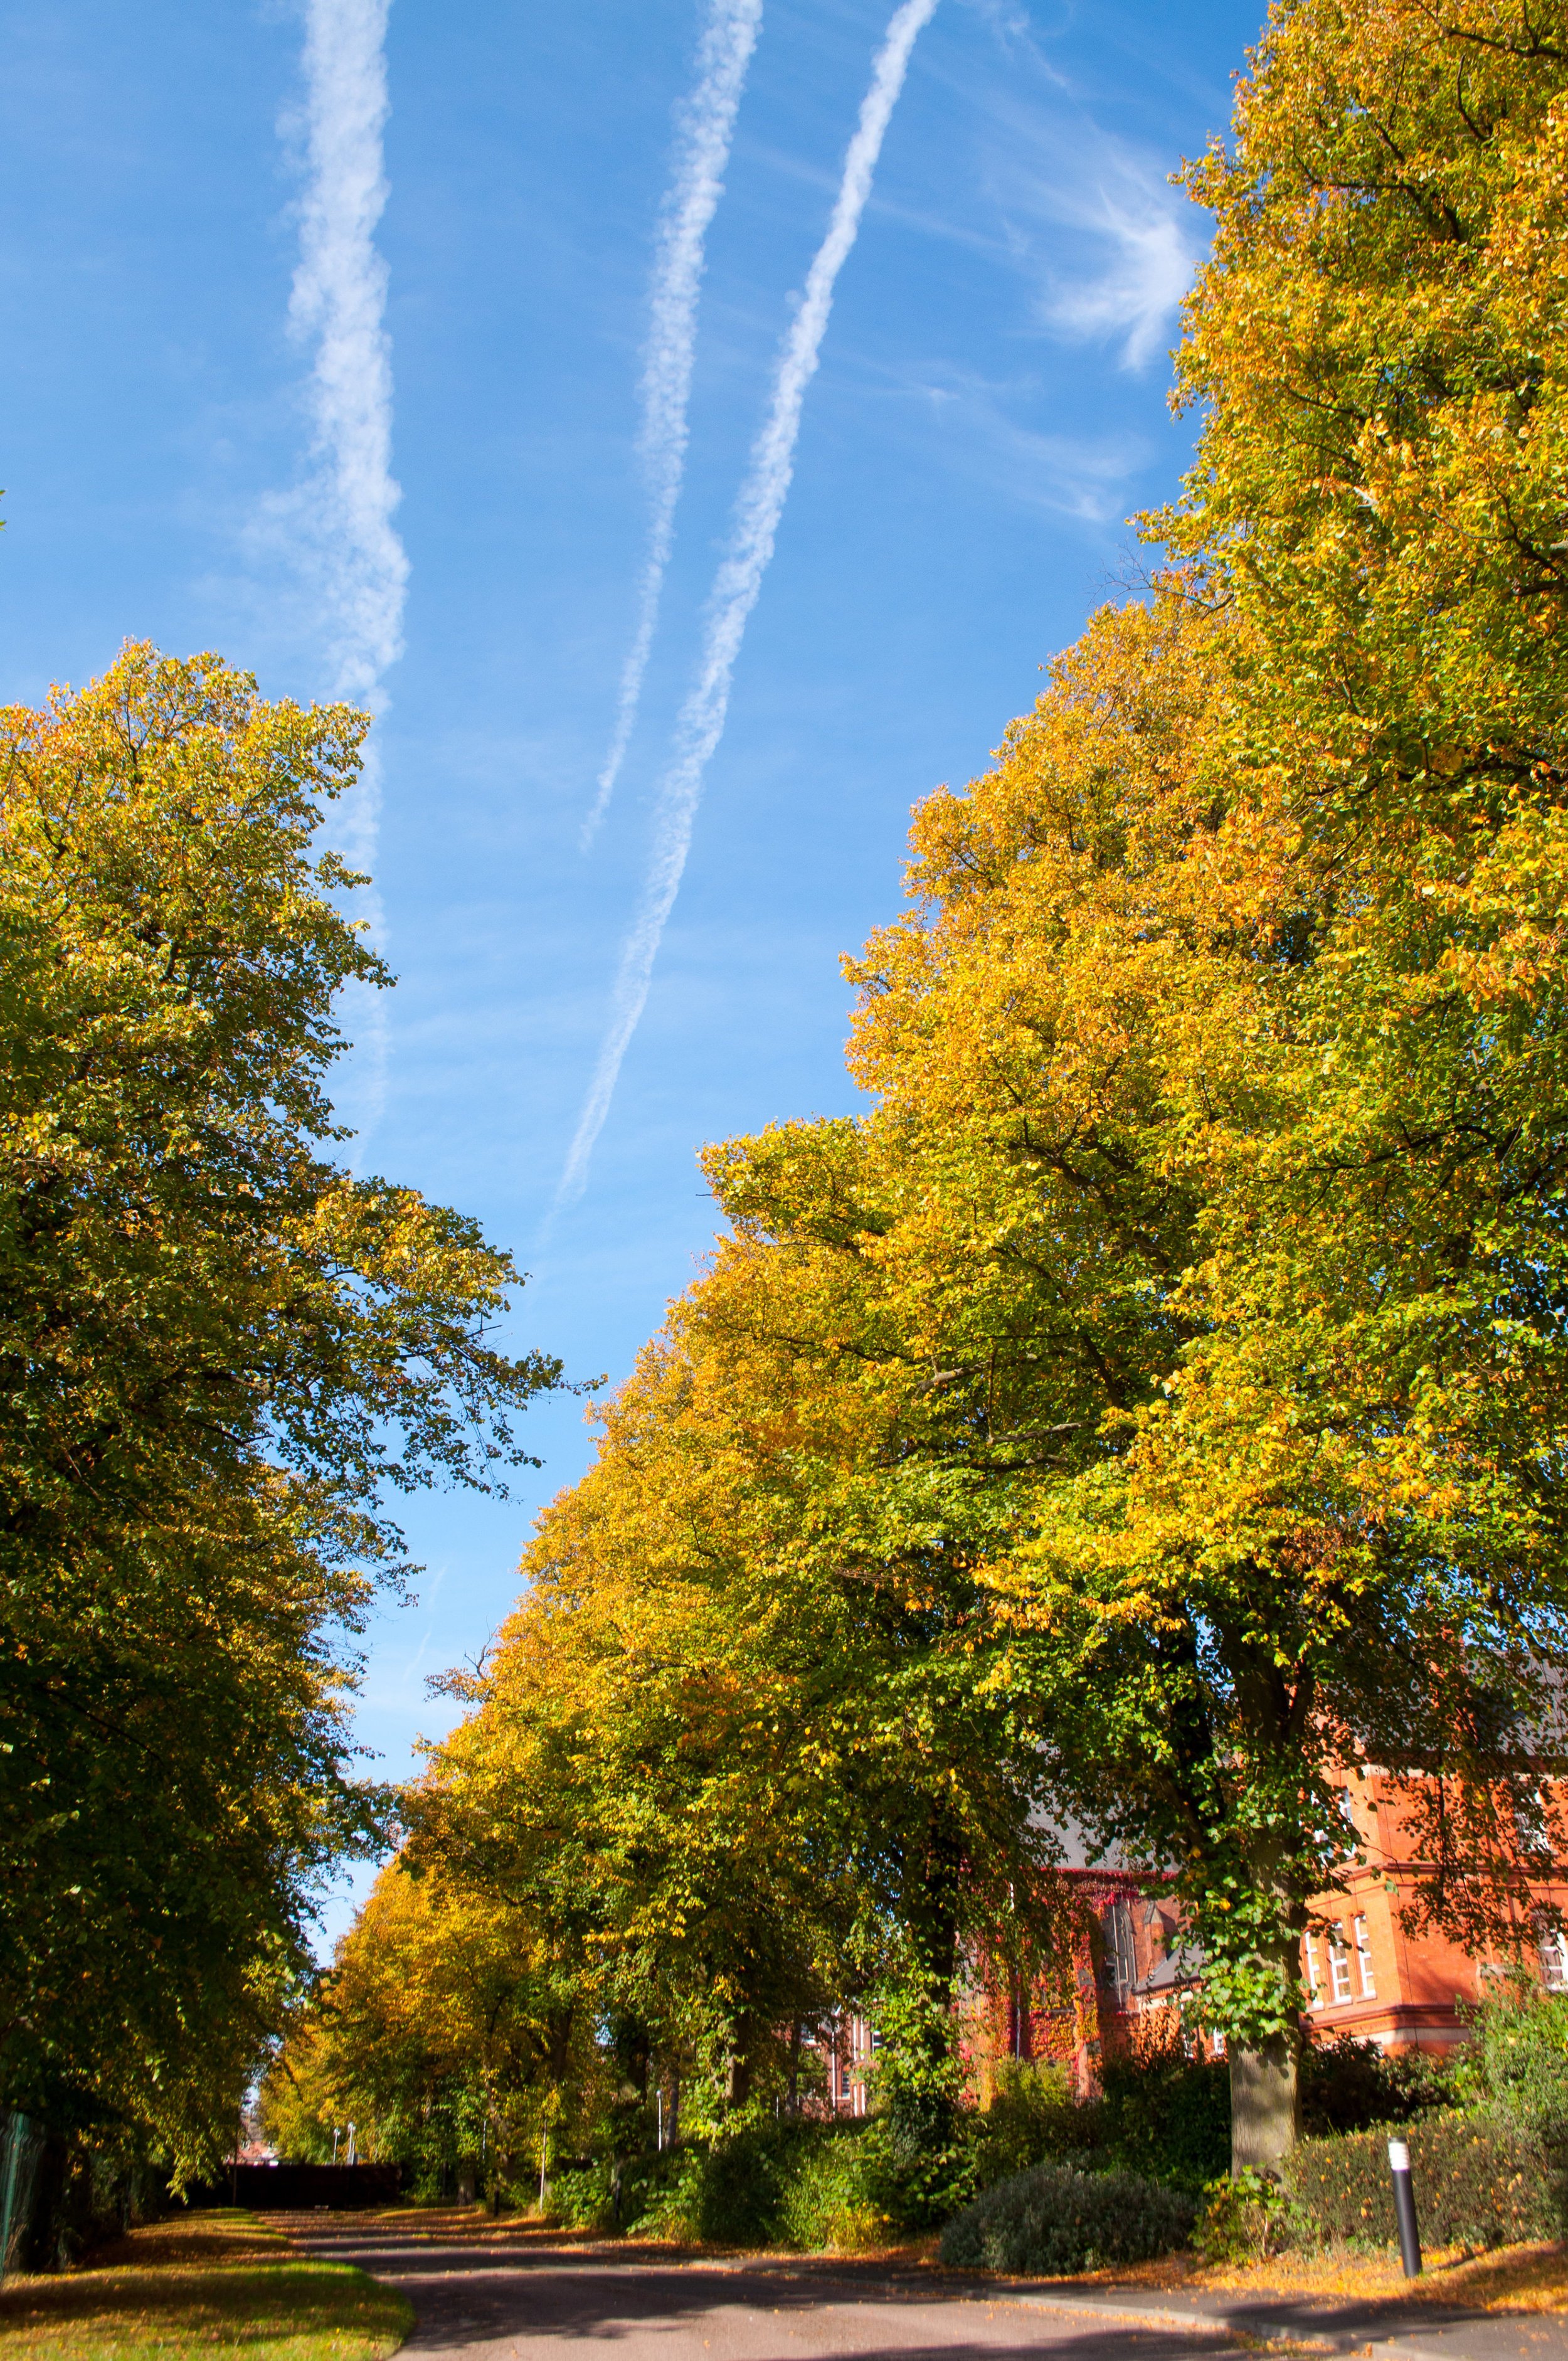 The lines of trees and the plane trails in the sky really draw your eyes through the image to look at the autumn folliage